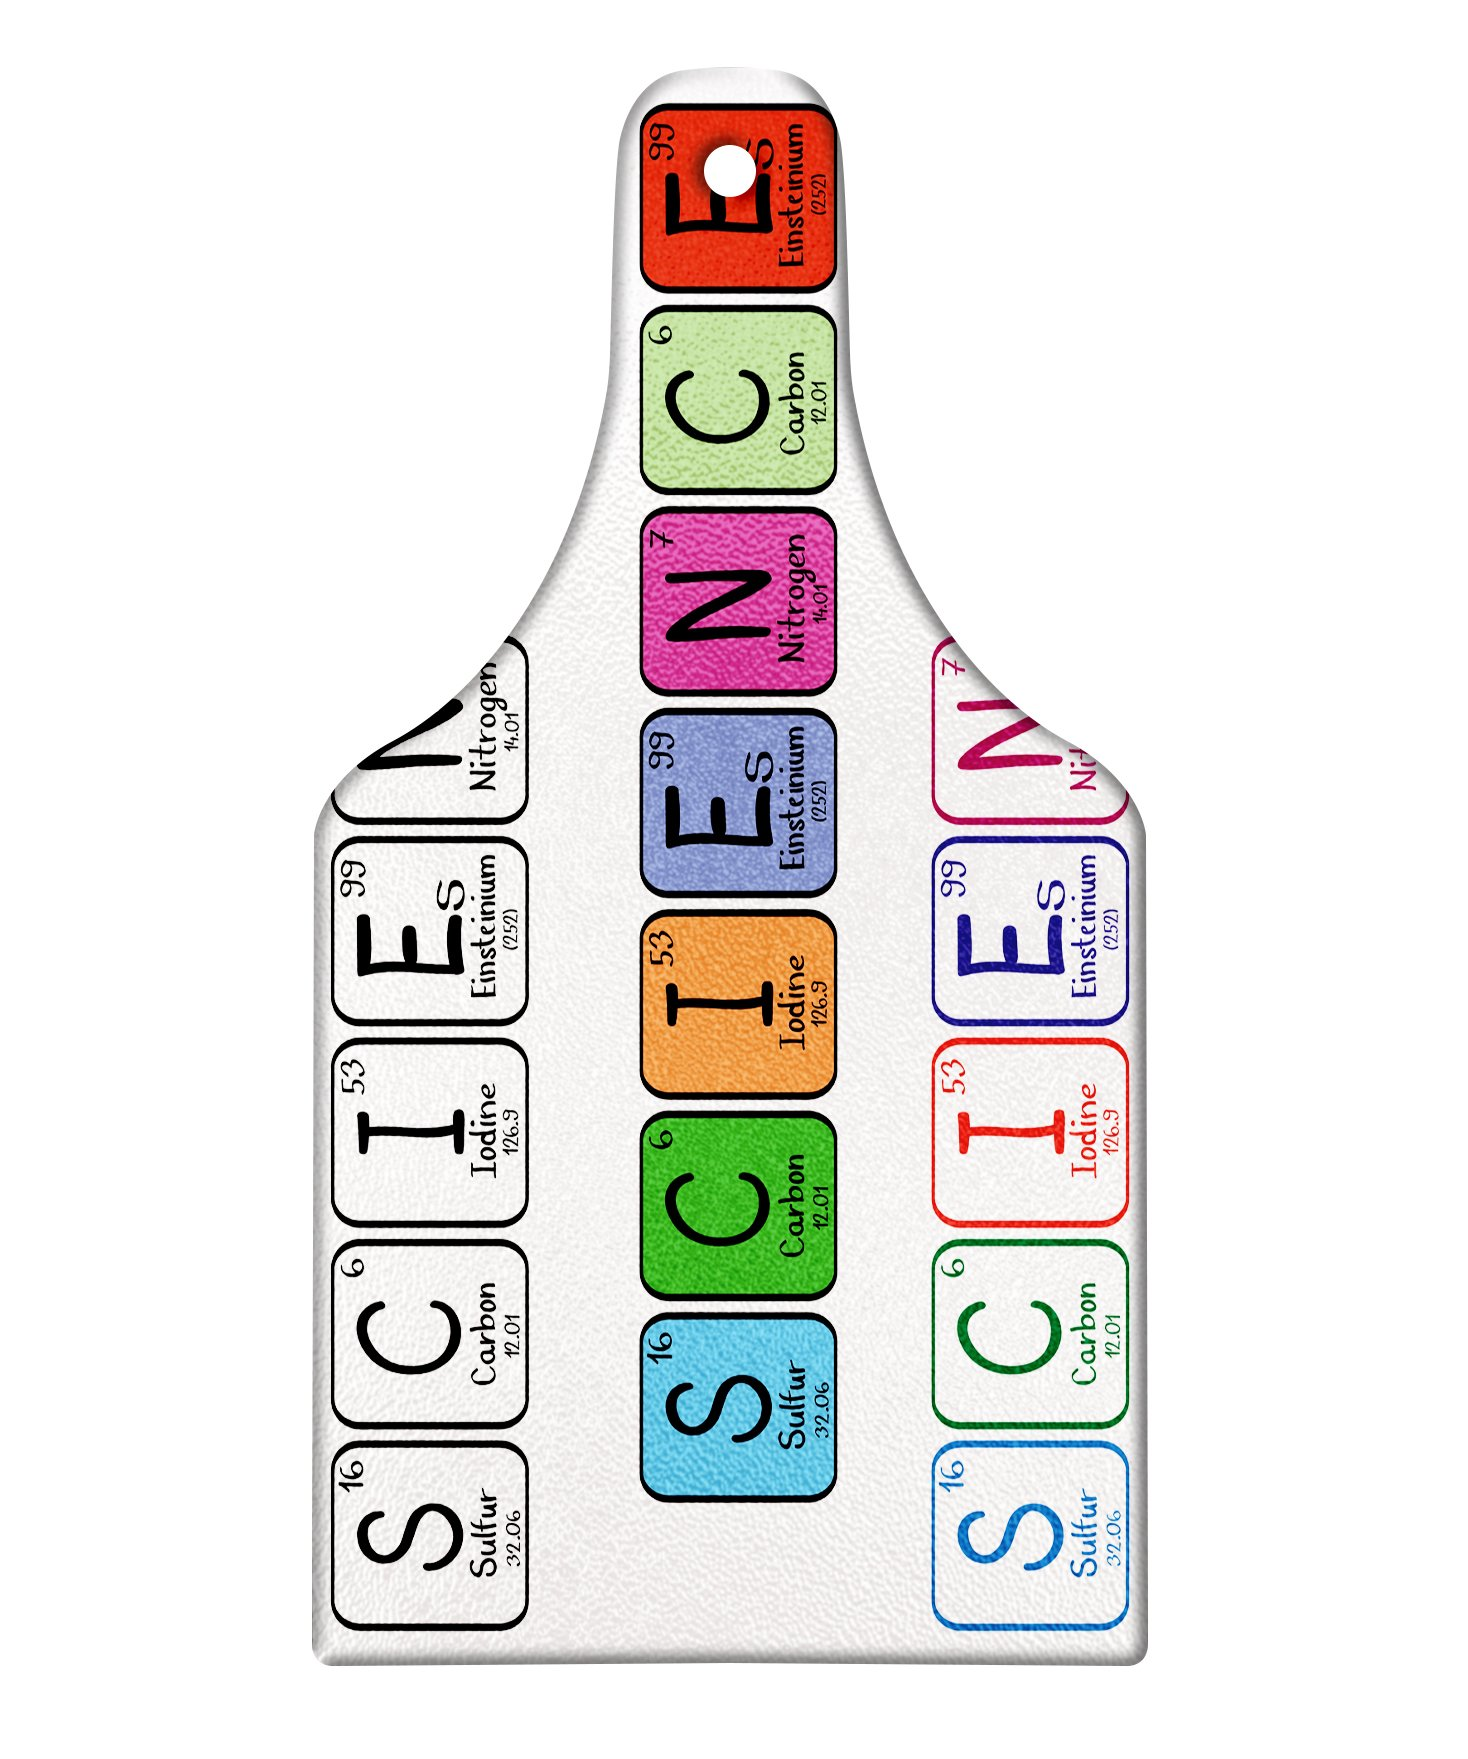 Ambesonne Periodic Table Cutting Board, Science Letterings with Capital Elements School Students Chemistry Lovers, Decorative Tempered Glass Cutting and Serving Board, Wine Bottle Shape, Multicolor